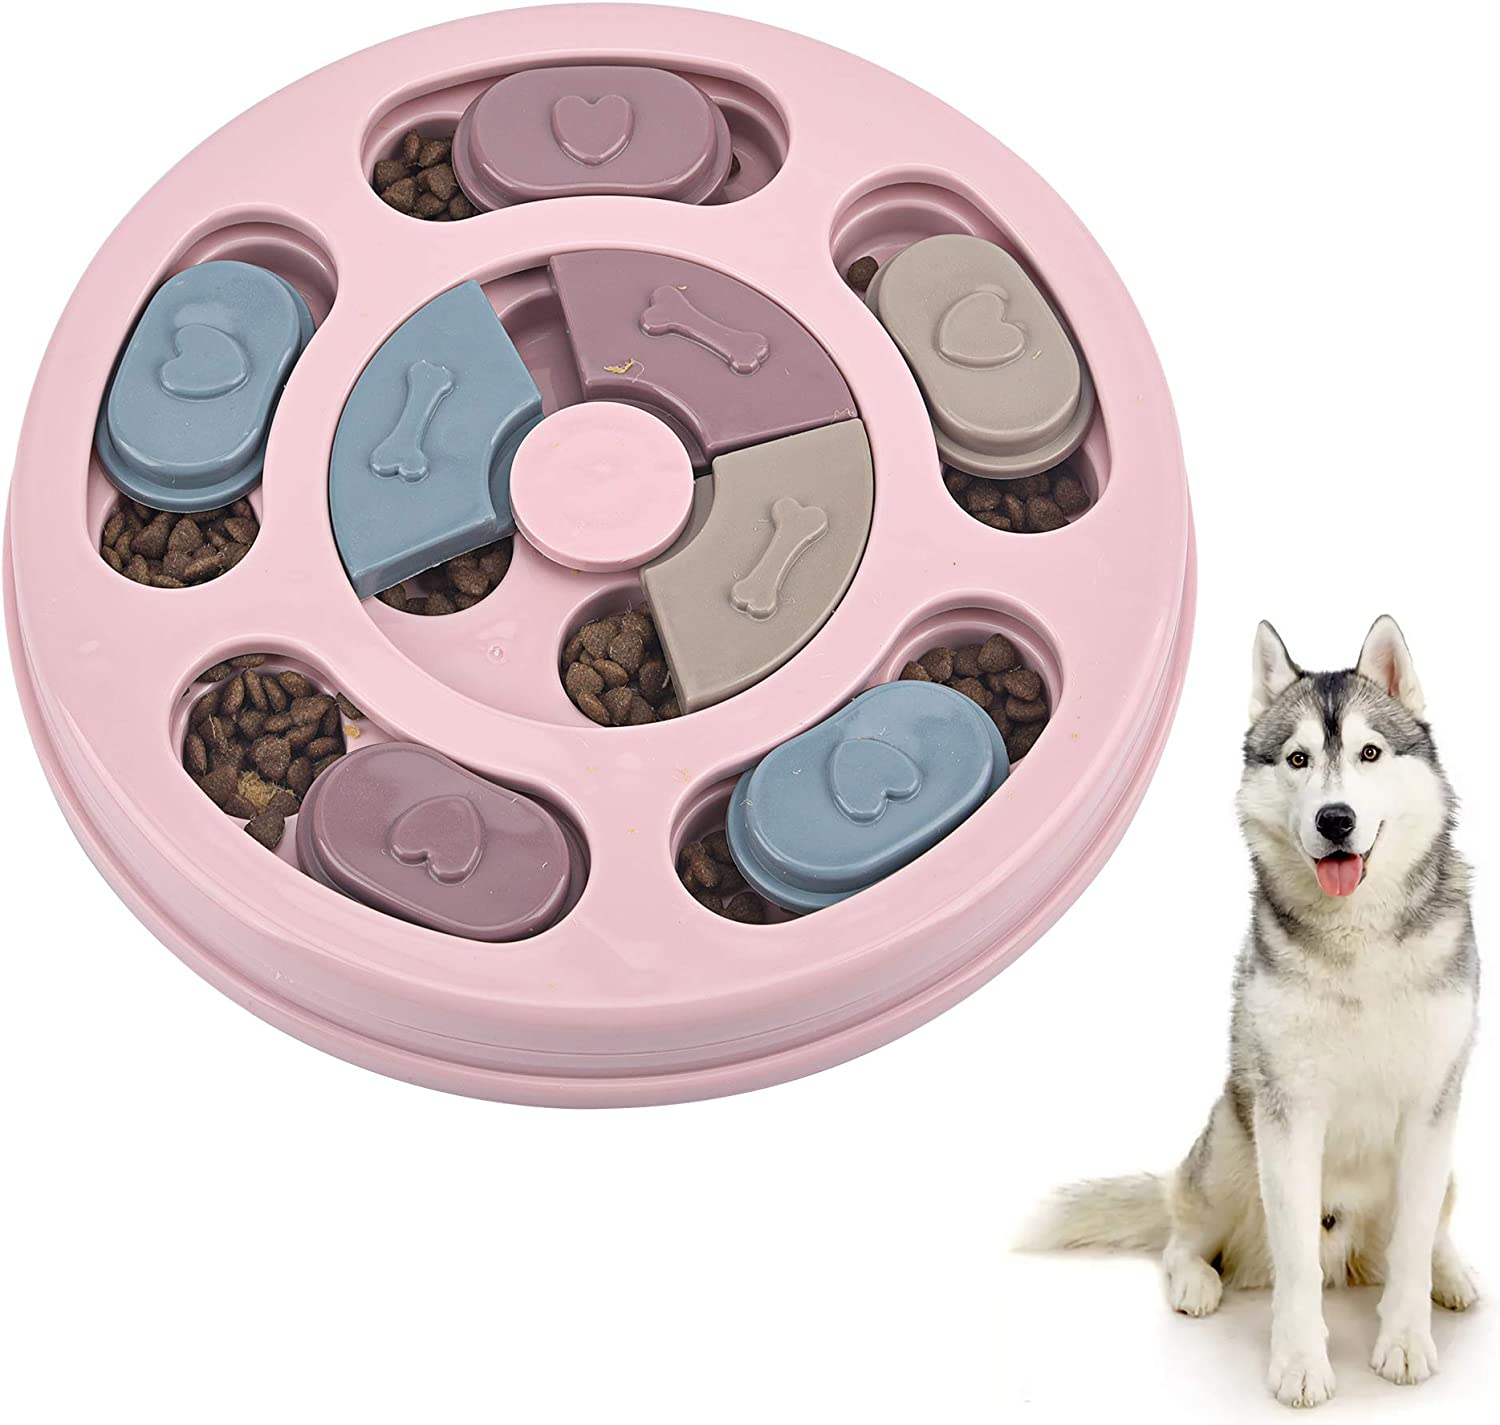 Interactive Dog Puzzle Slow Feeder,Seek-a-Treat Pet Food Dispenser,Stimulate IQ Brain Game Training Toys,Anti-Slip Slow Eat Dogs Feed Bowl for Beginner,Puppy,Small,Medium and Large Pets,Pink Round